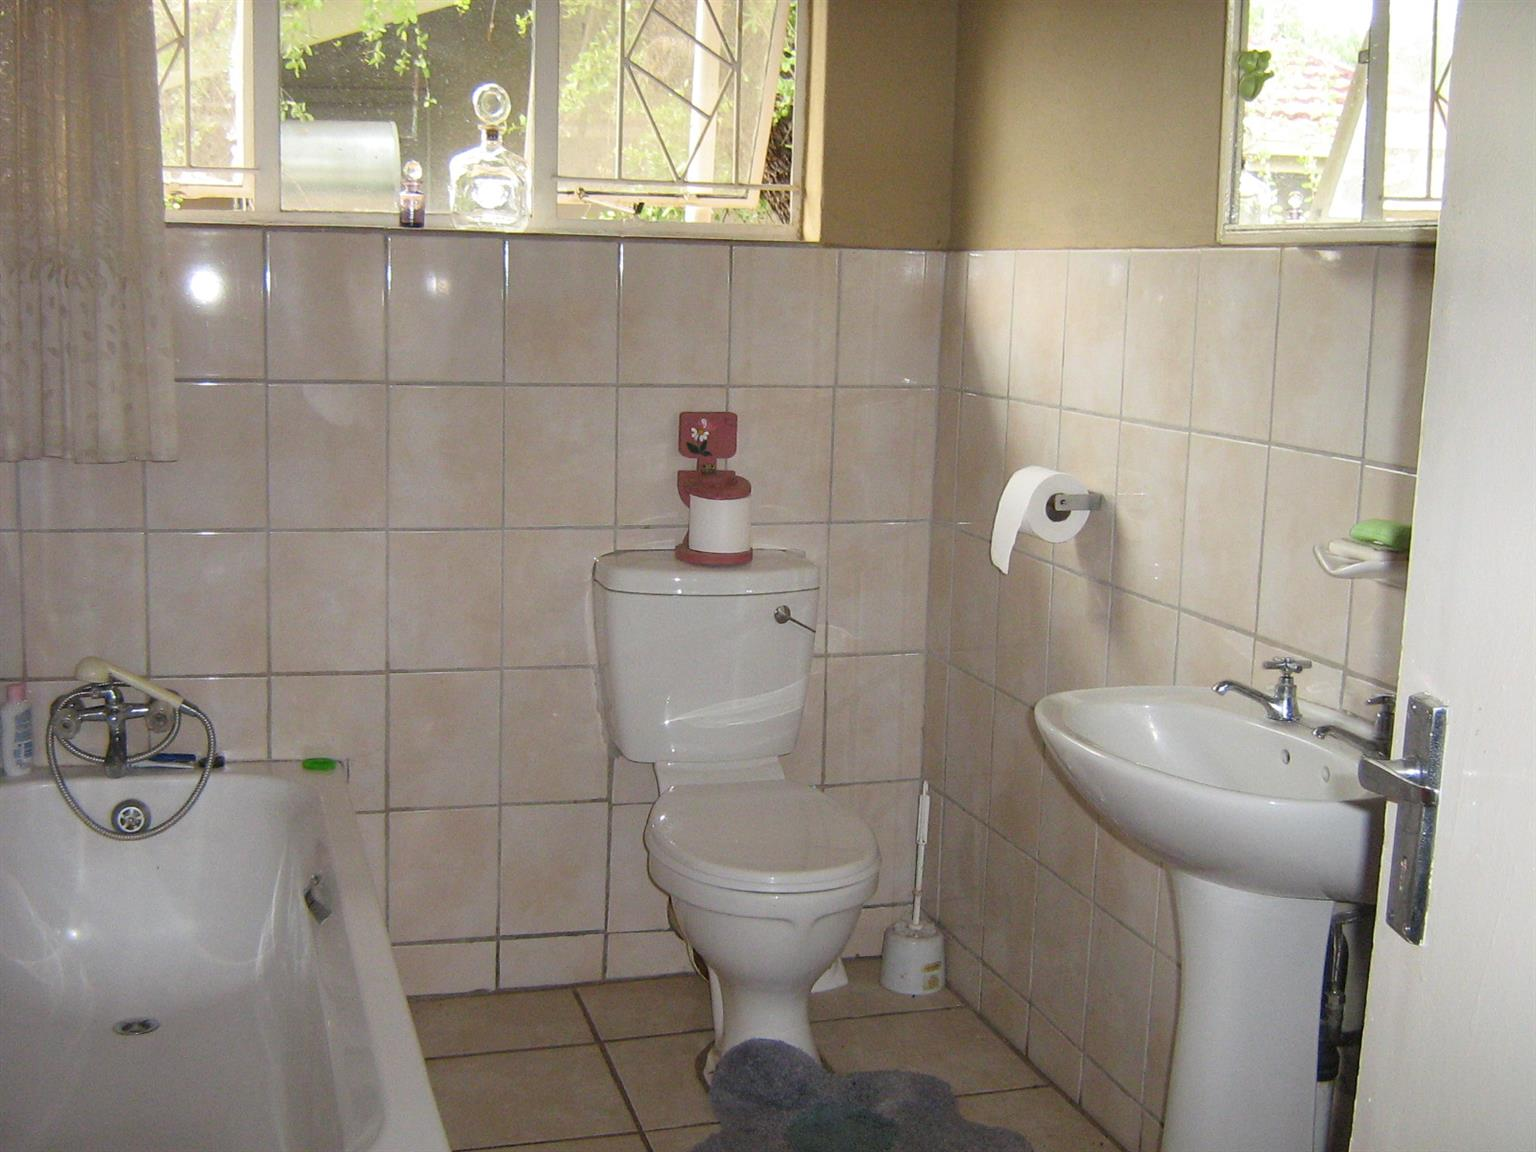 NEW 2 BEDROOM FLAT ON THE MARKET: